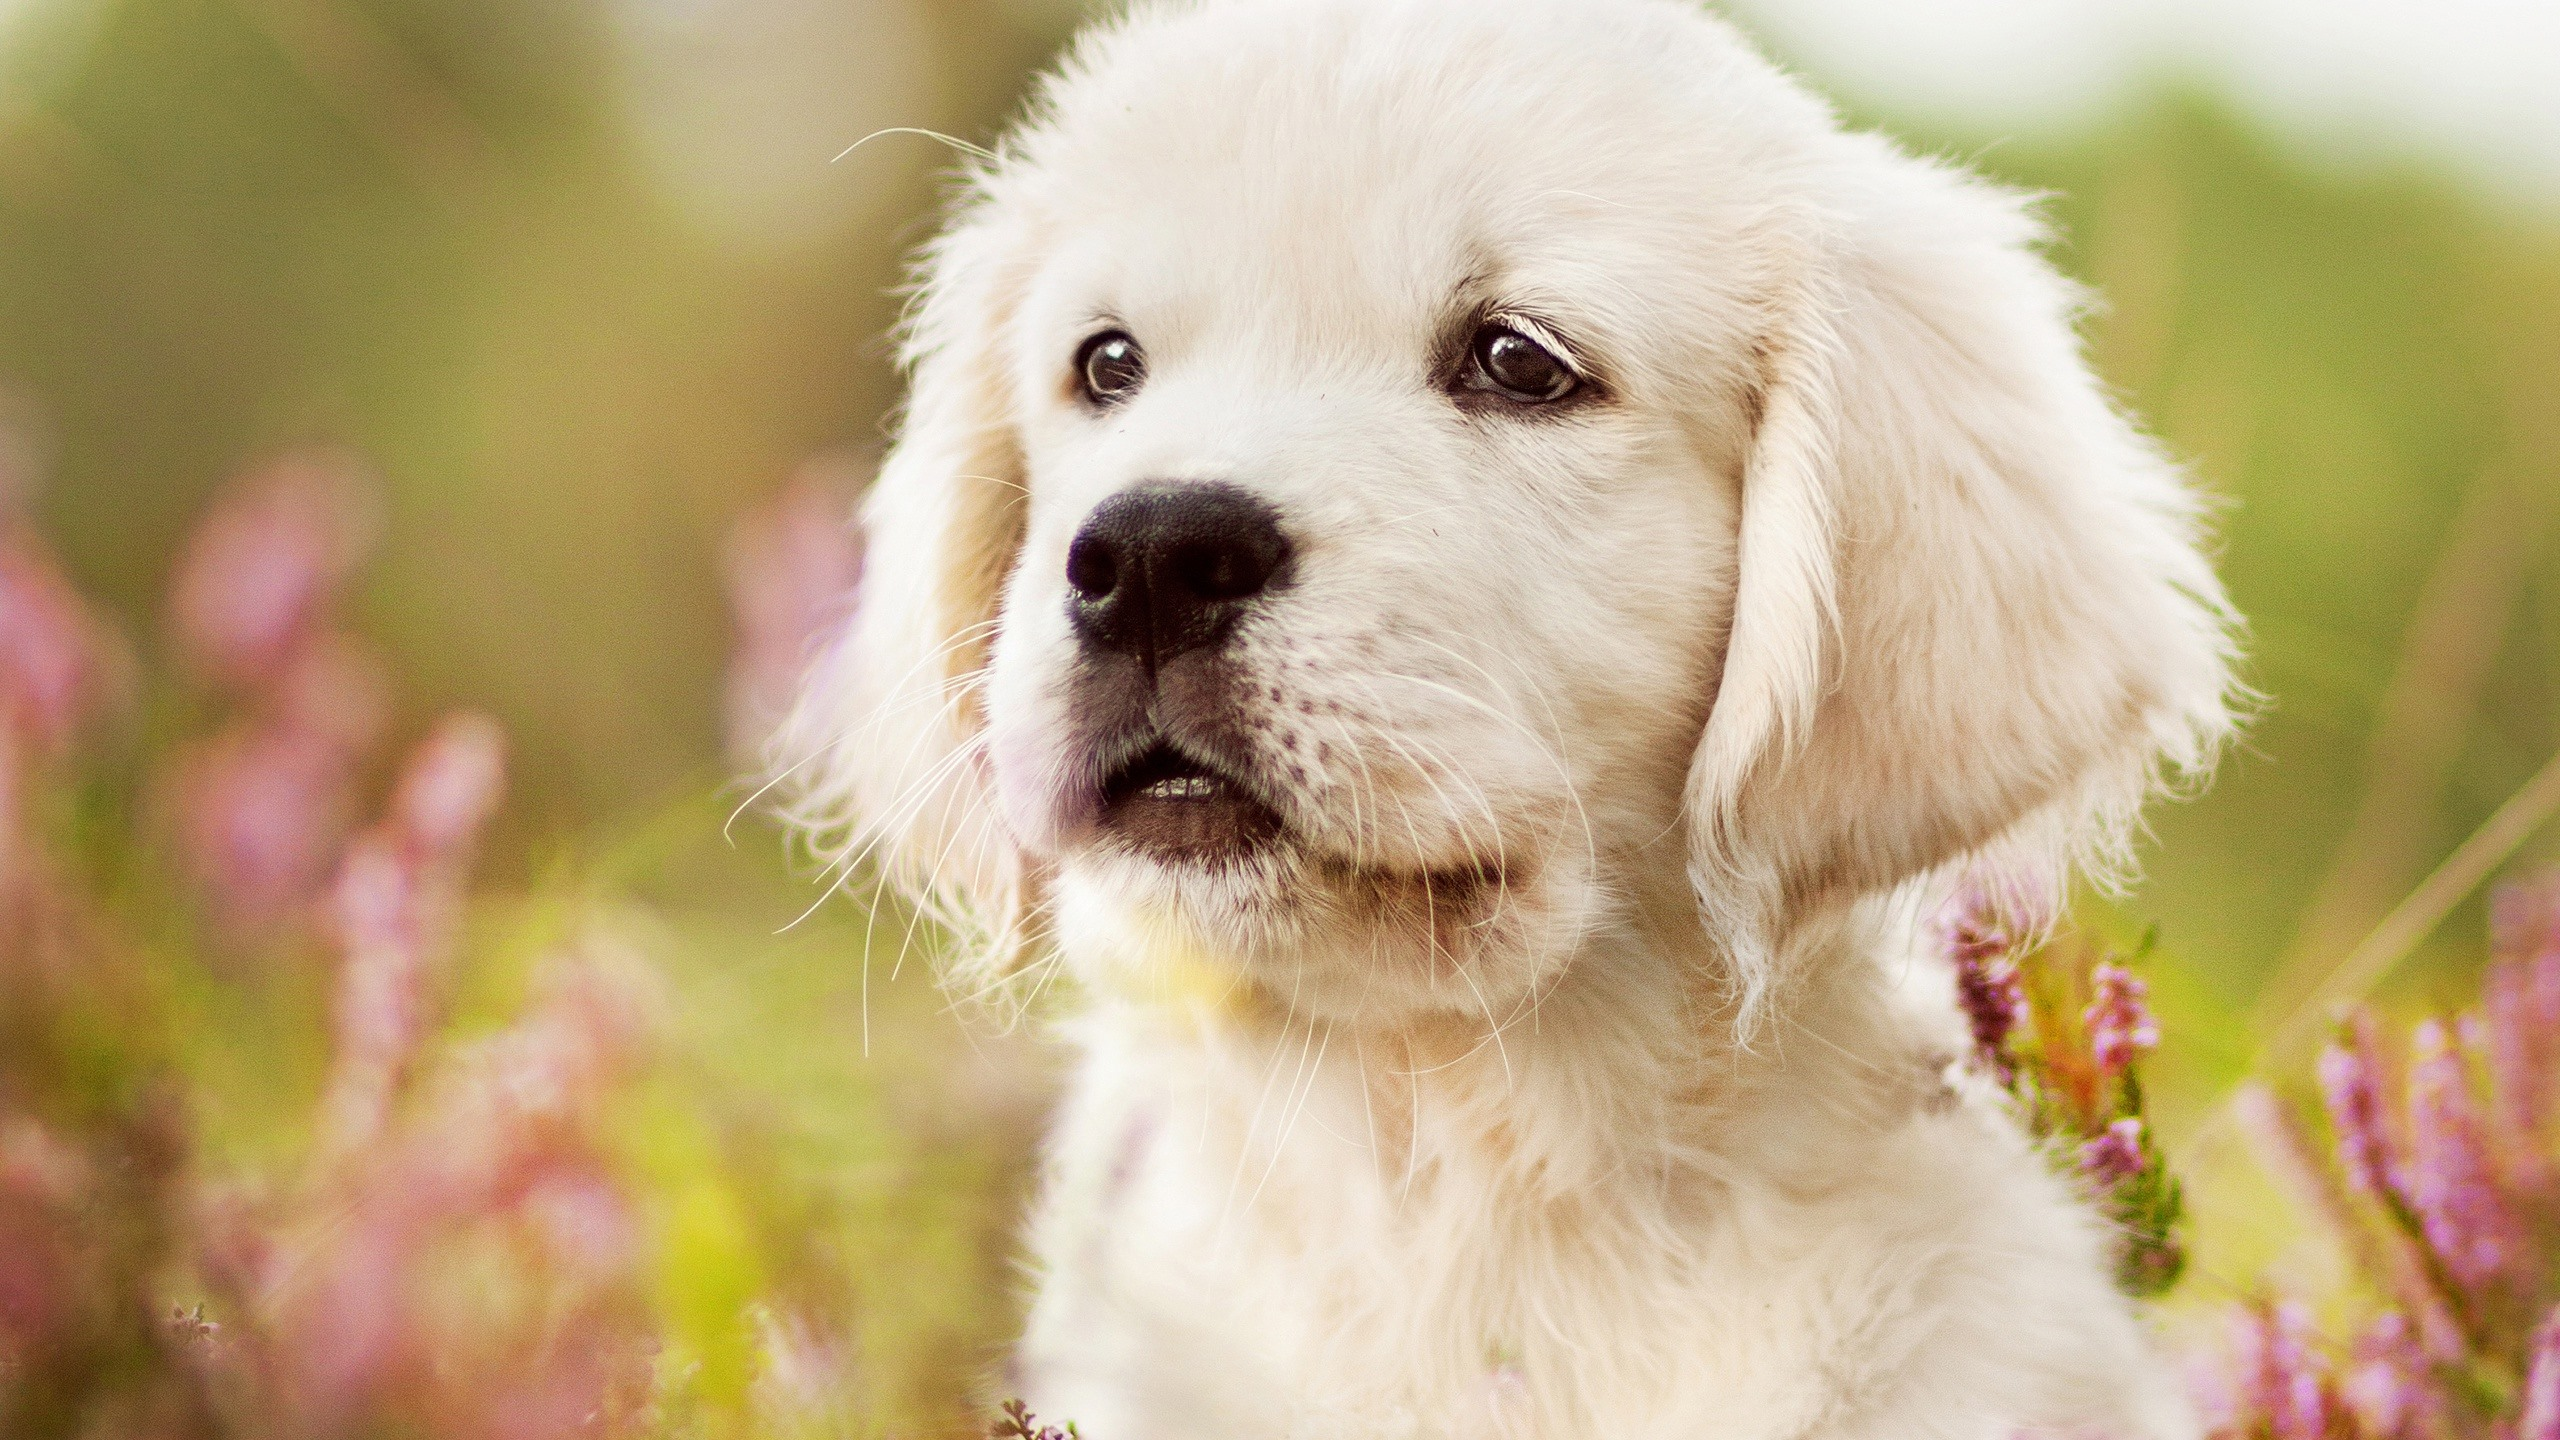 Wallpaper Cute White Puppy Look 2560x1600 Hd Picture Image